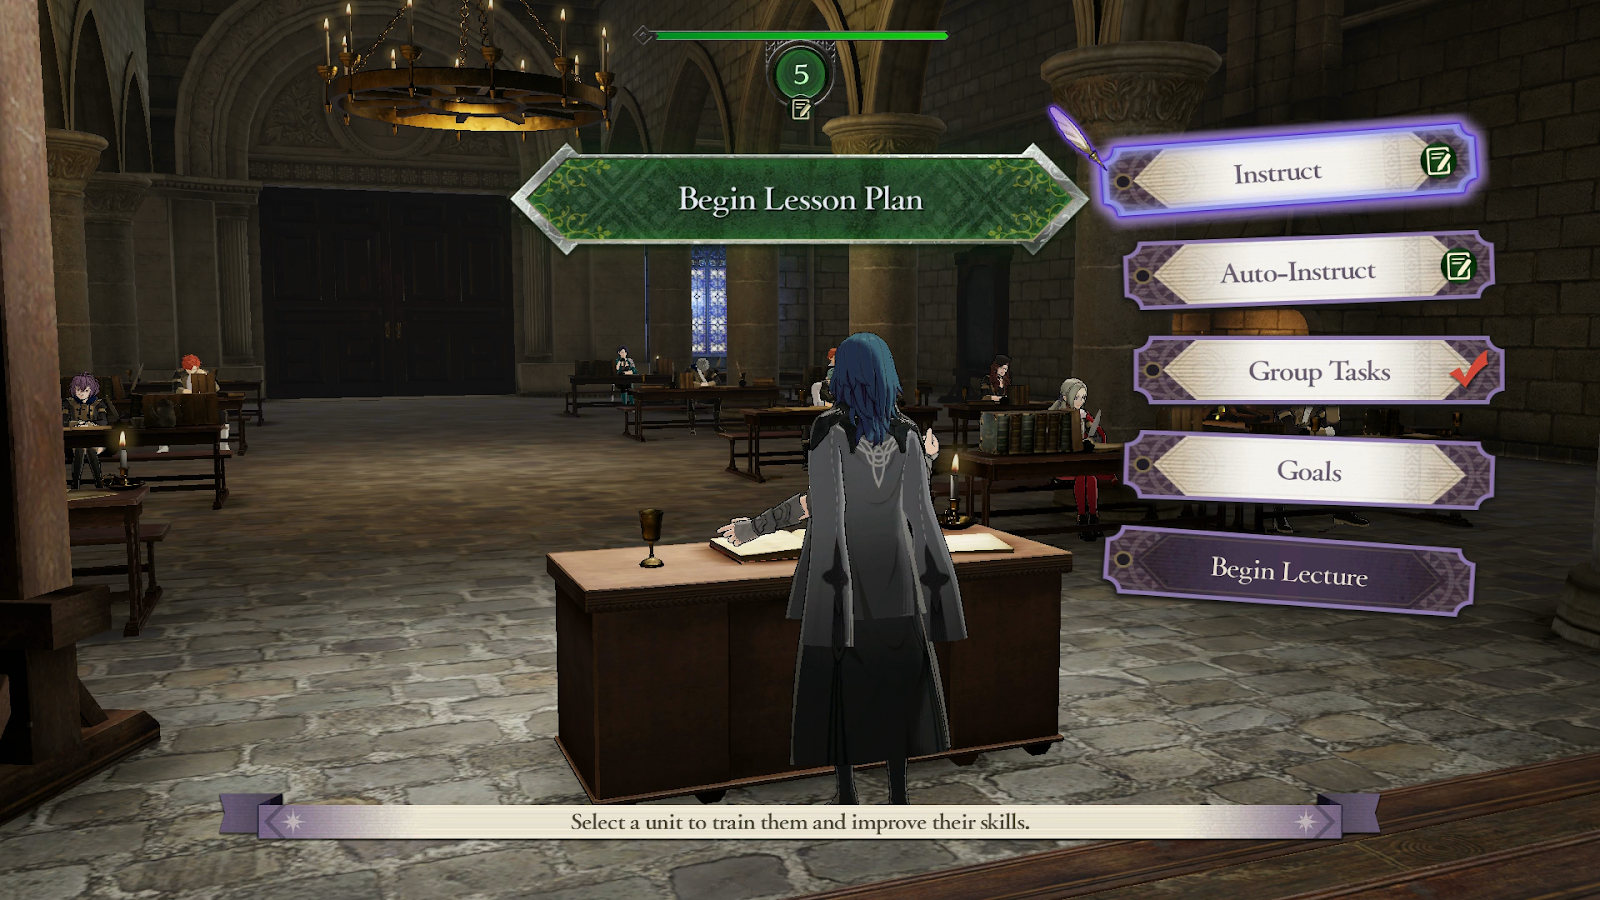 Fire Emblem: Three Houses Captures The Challenge Of Fostering Your Students' Passions